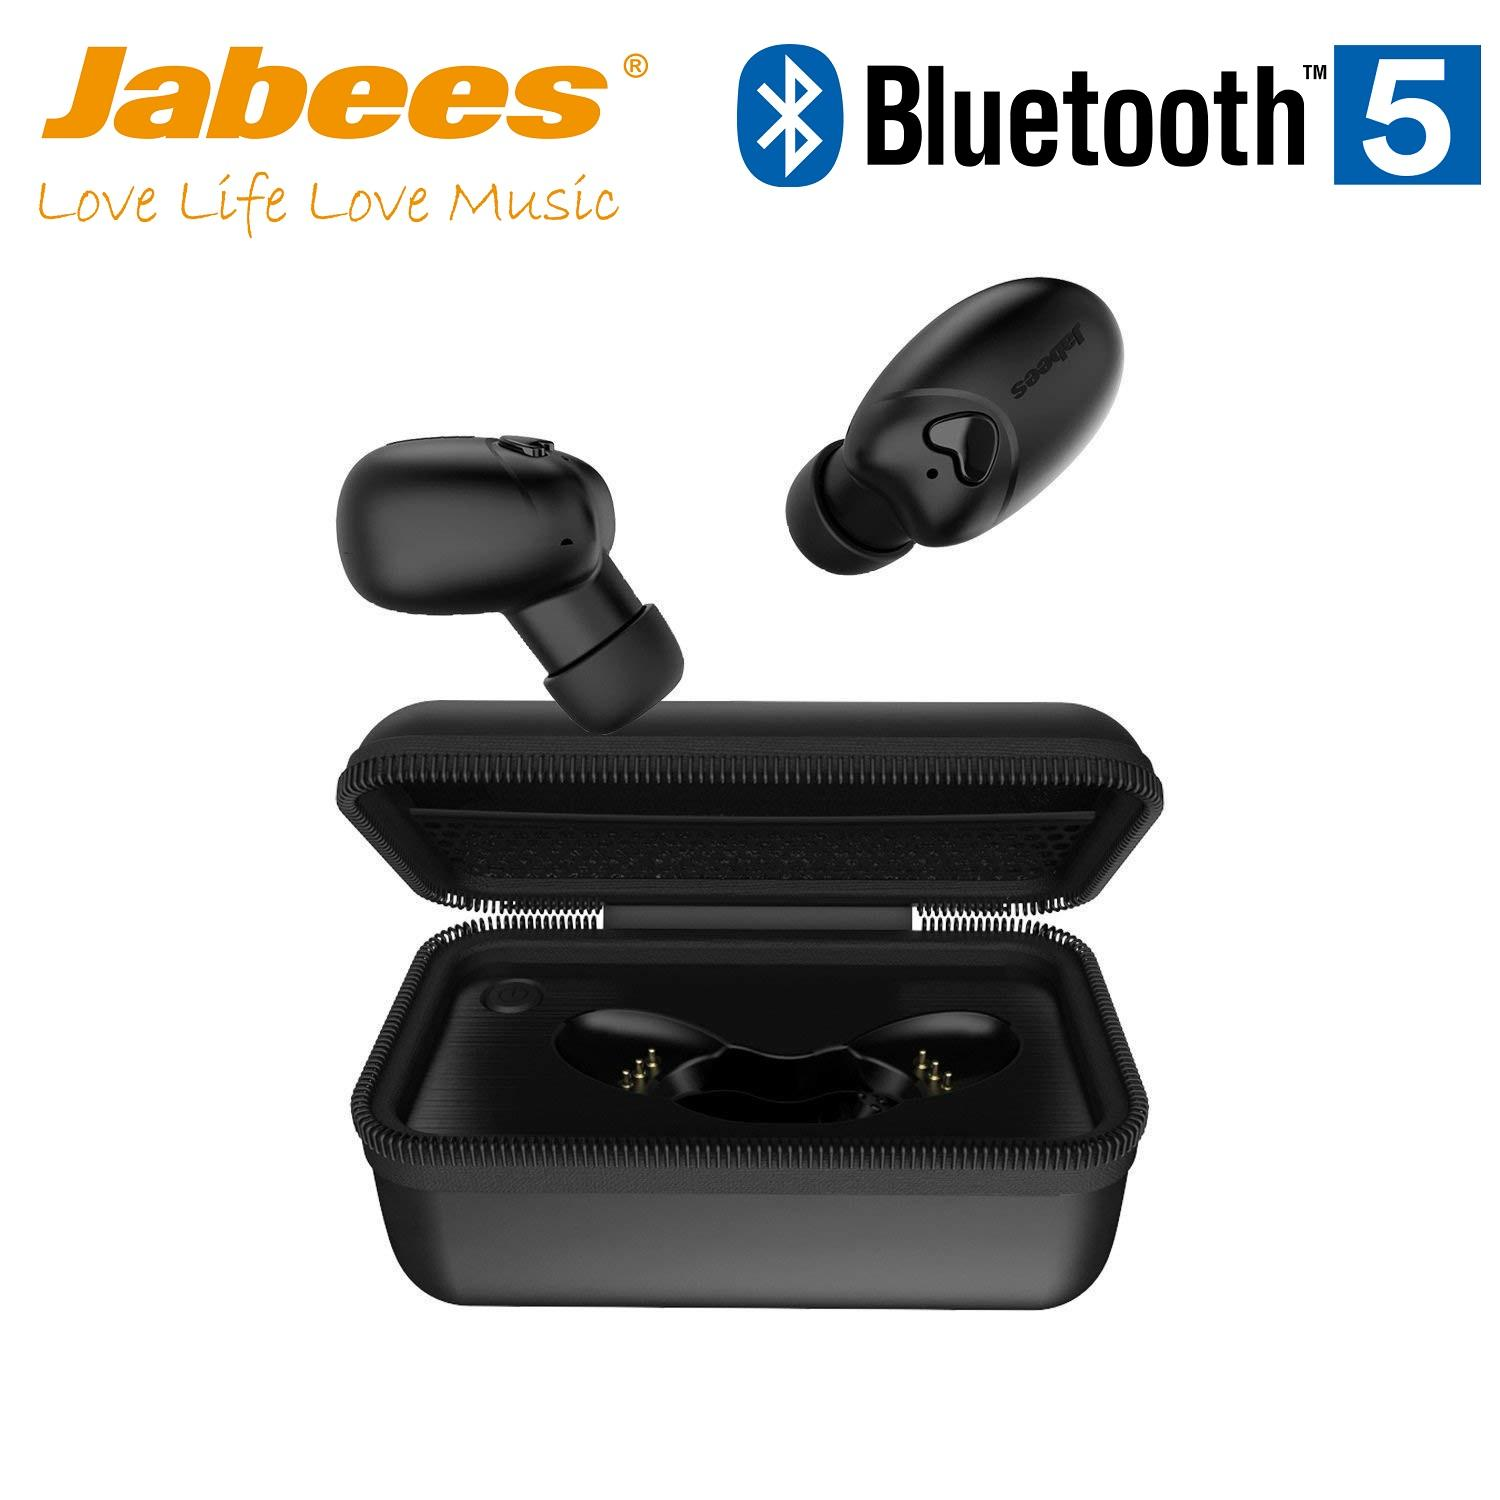 5924fecc5b0 Jabees Beebud Bluetooth 5.0 Truly Wireless Bluetooth Earphones True  Wireless Headphones, with Built-in